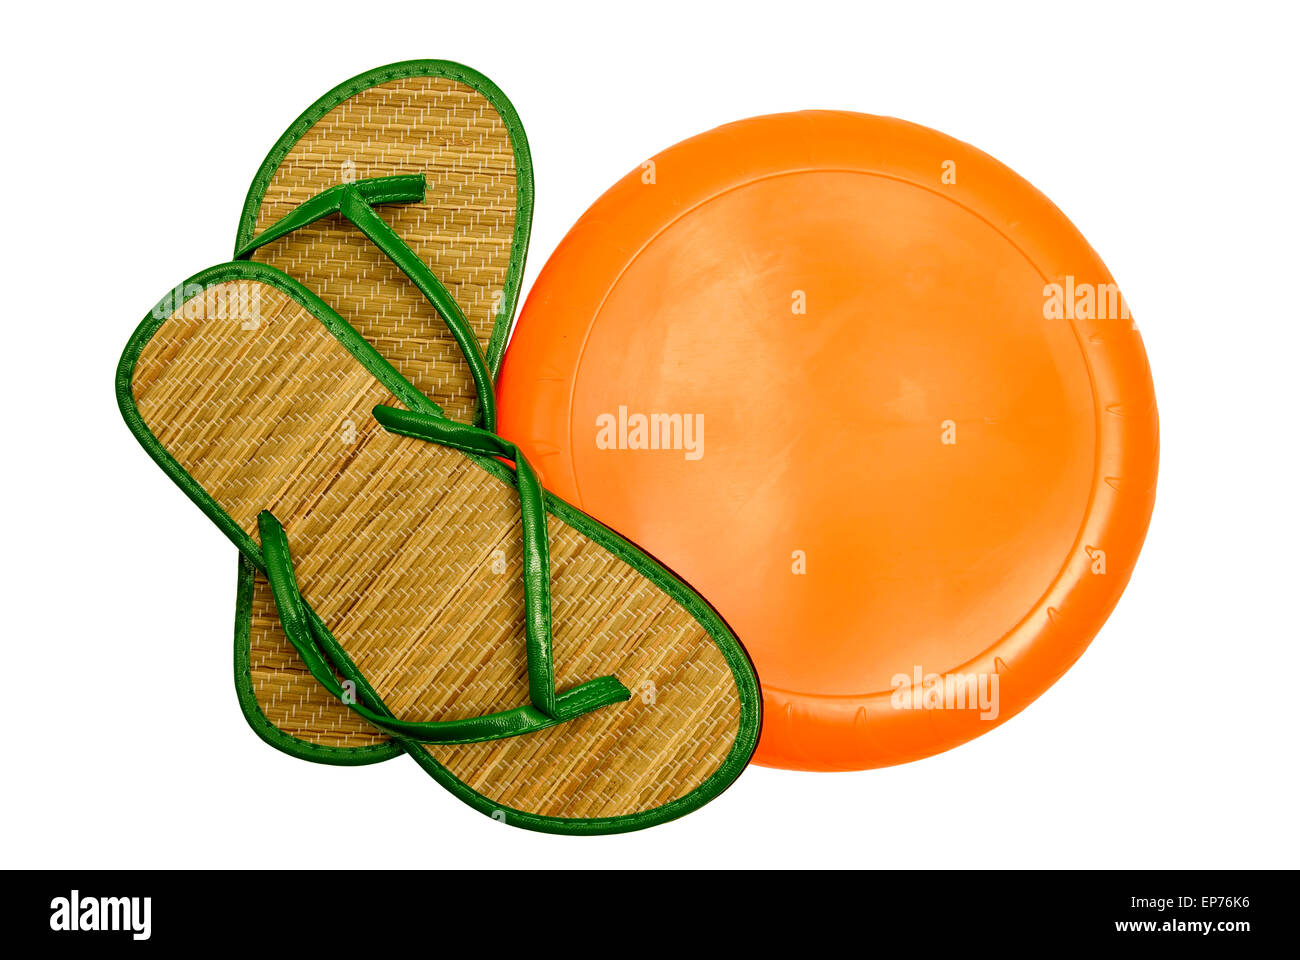 Fun In The Sun With Bright Orange Blank Frisbee And Colorful Green Sandals on white background.  Horizontal shot - Stock Image